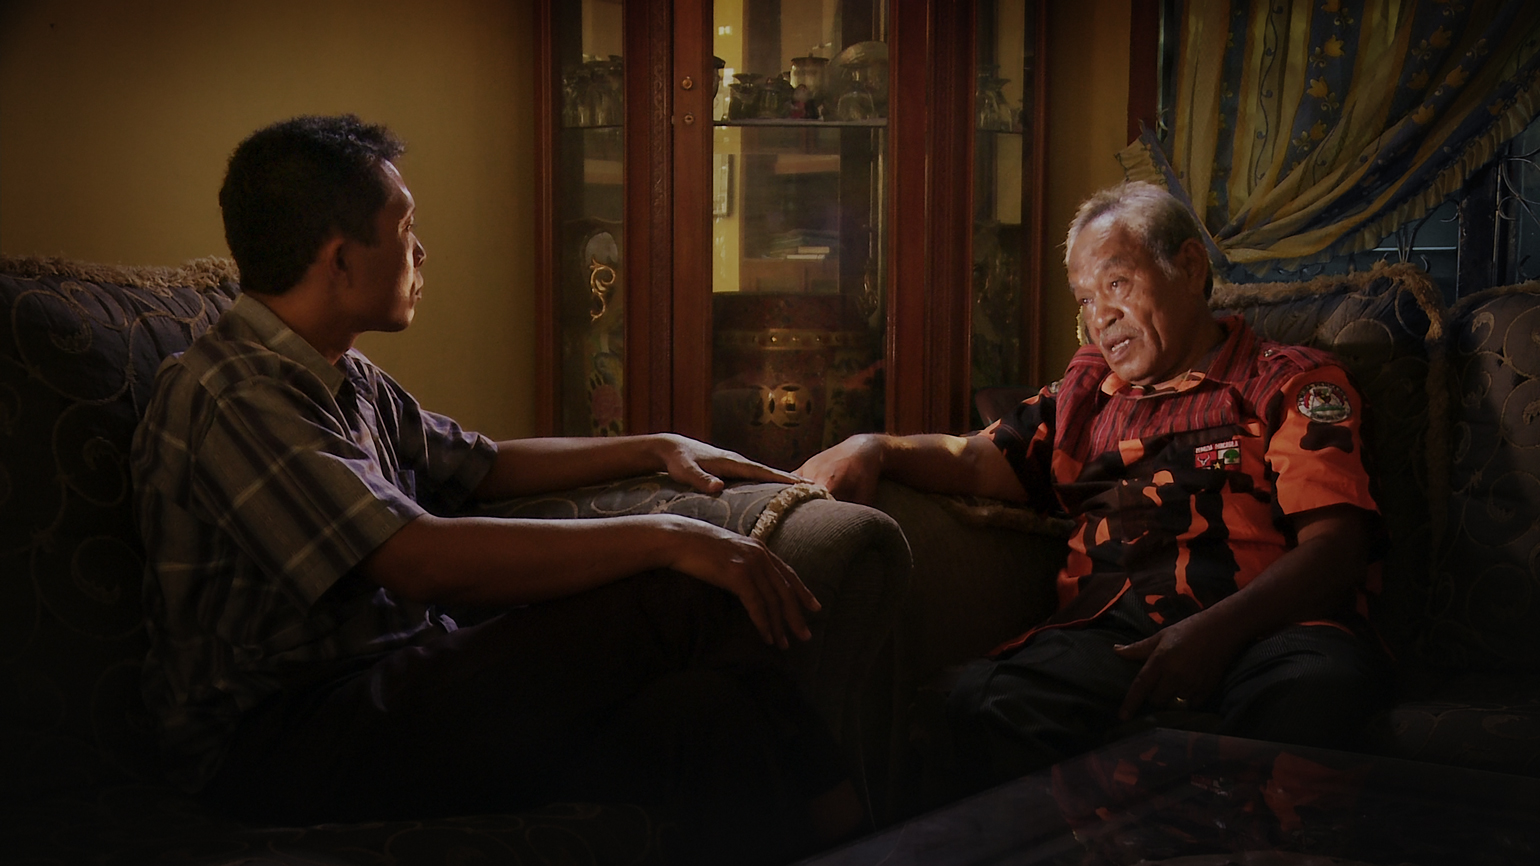 Risultati immagini per the look of silence movie